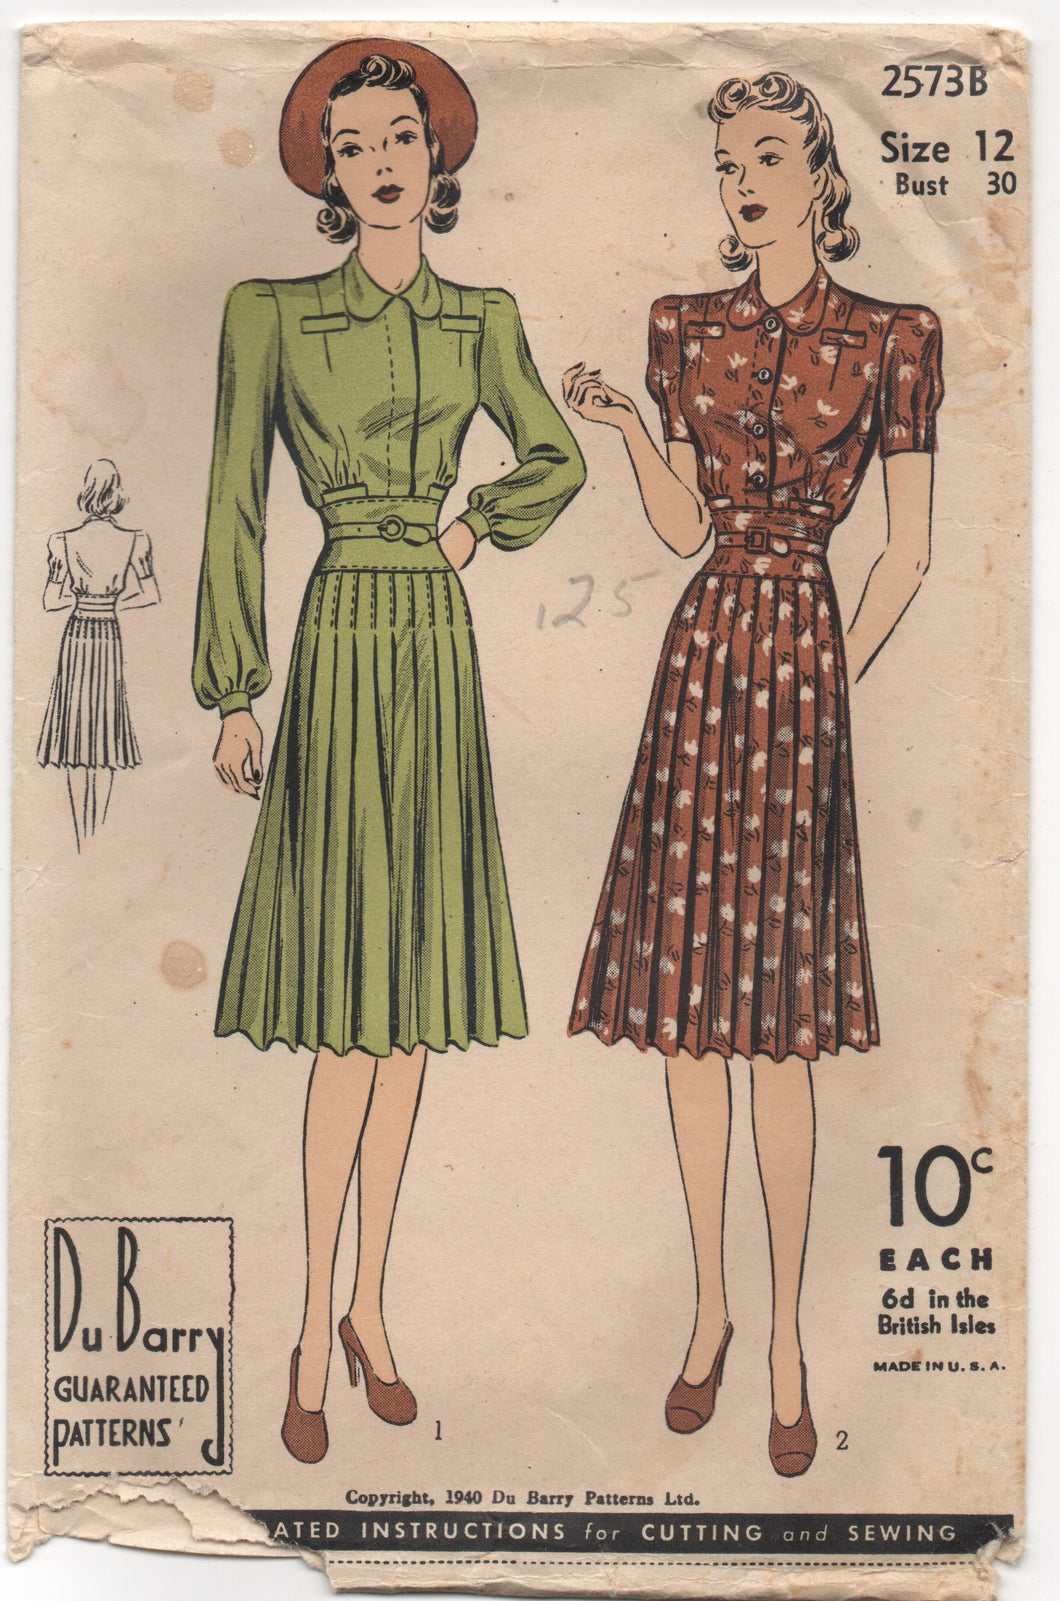 1940's DuBarry One Piece Dress with Defined waistband and pleated skirt - Bust 30